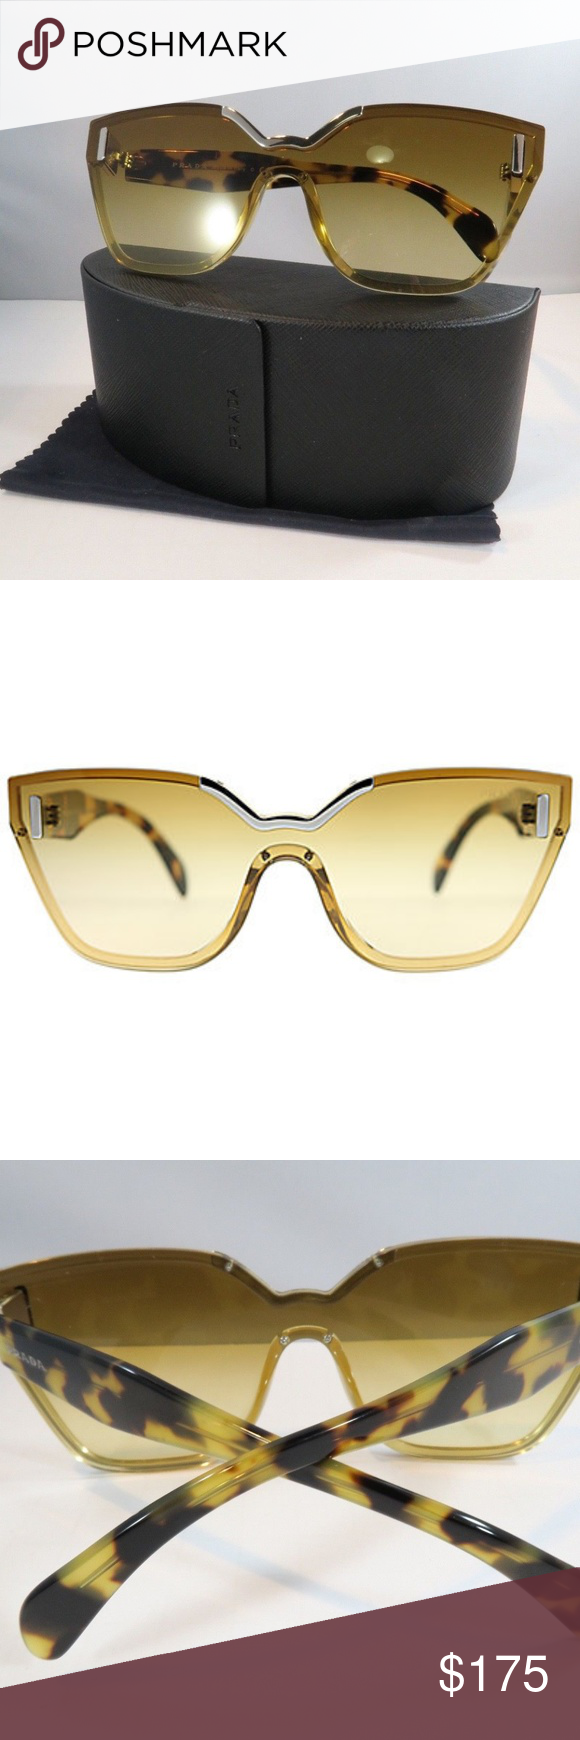 0ad66cb17cd They retail for  470.00 Style  0PR 16TS PRODUCT DETAILS  · Frame shape   shield · Frame color  beige · Lens color  light yellow ...